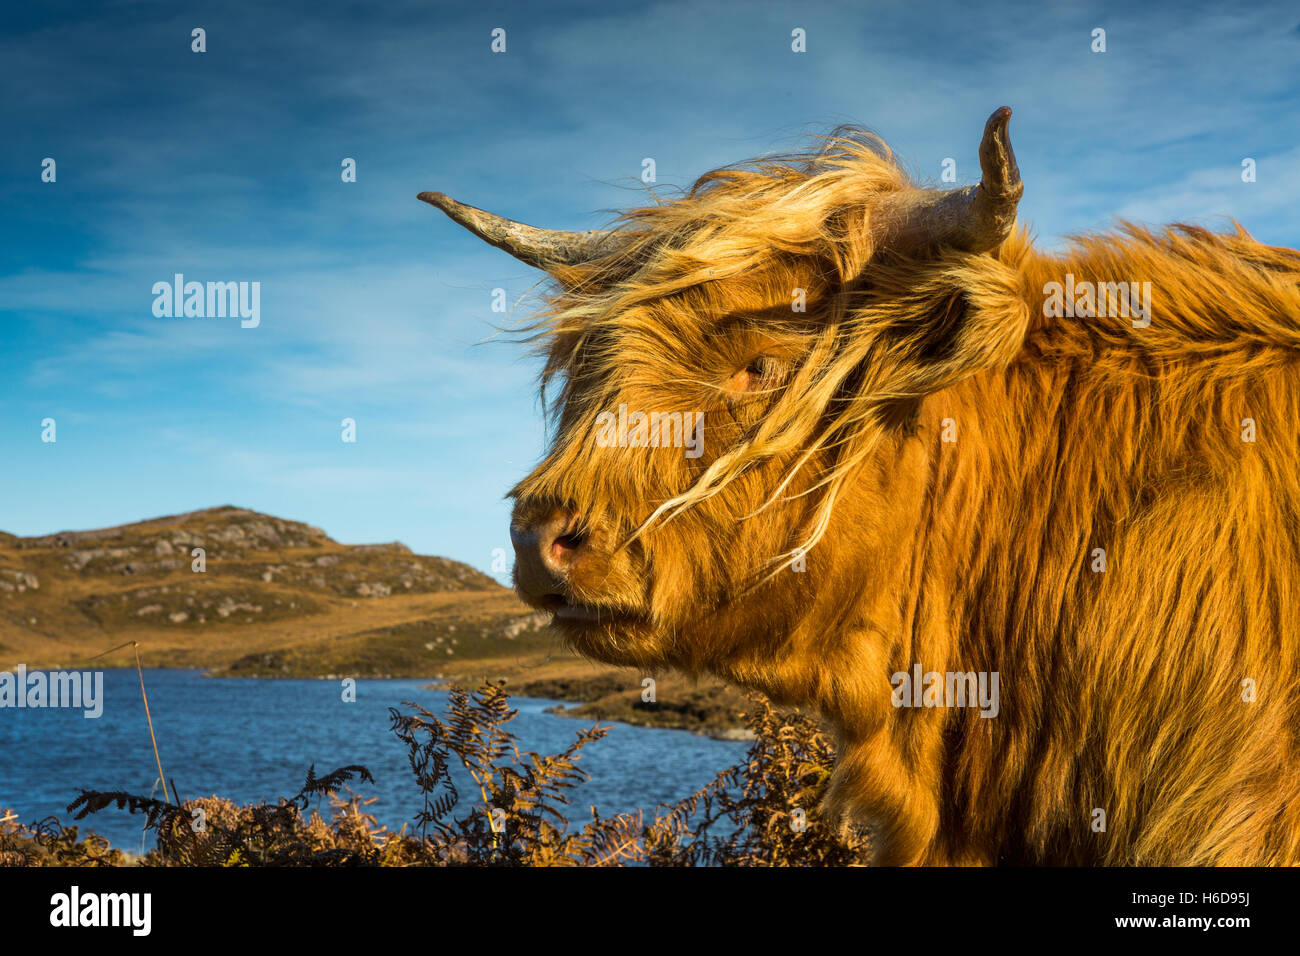 Highland cow with small loch in background. - Stock Image